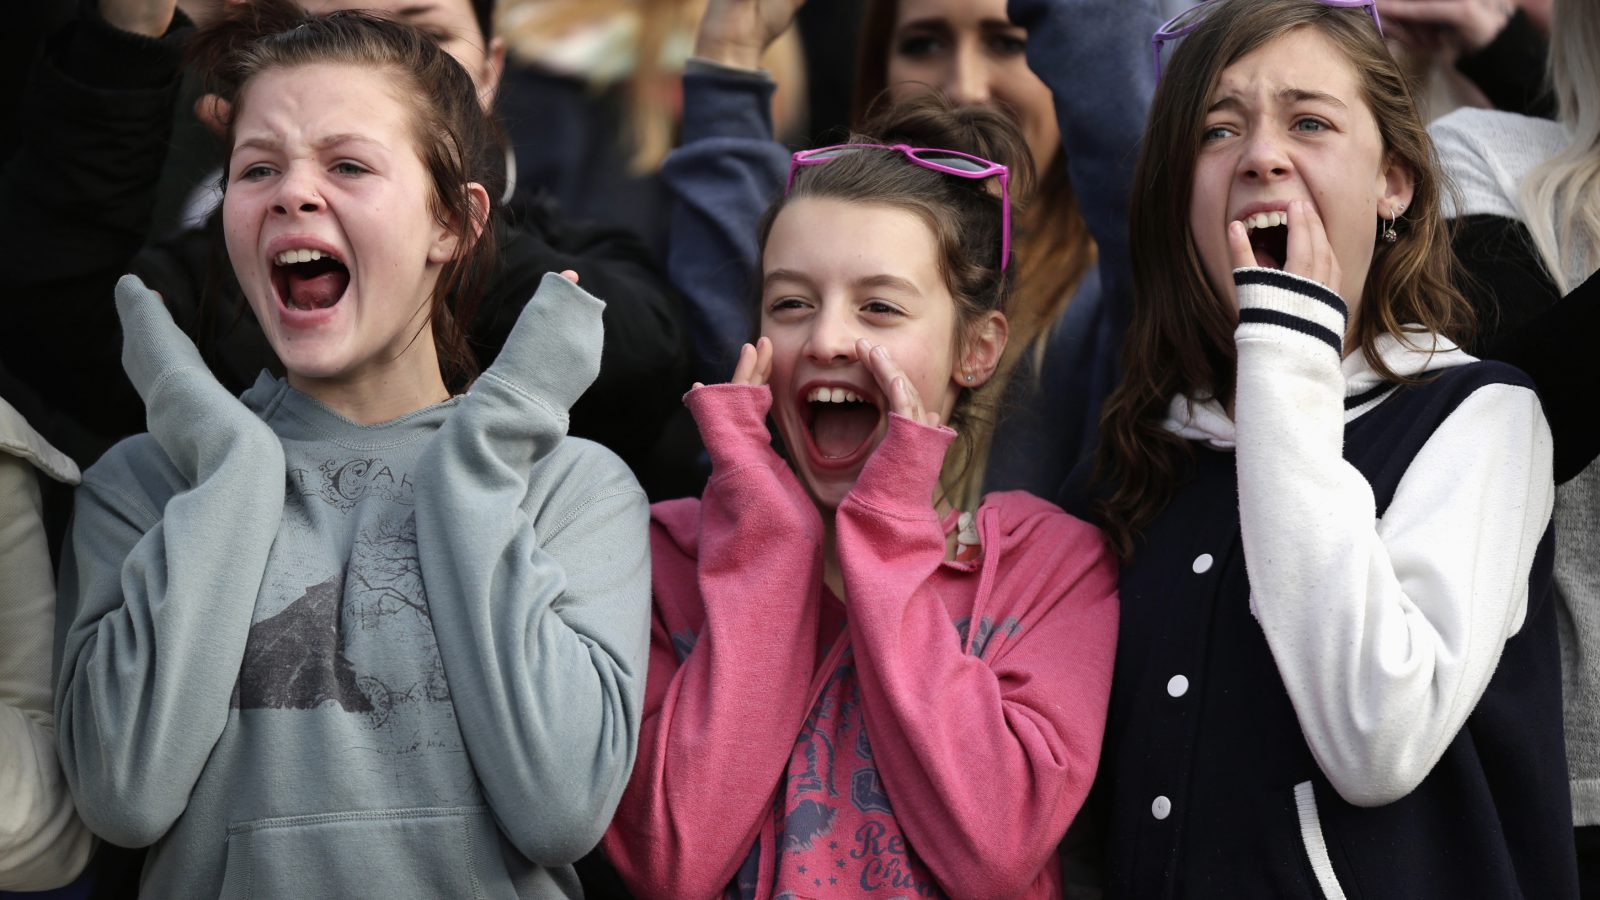 Fans react as Canadian singer Justin Bieber performs at an early morning promotional event in Sydney July 18, 2012. REUTERS/Tim Wimborne (AUSTRALIA - Tags: ENTERTAINMENT) - RTR350XX